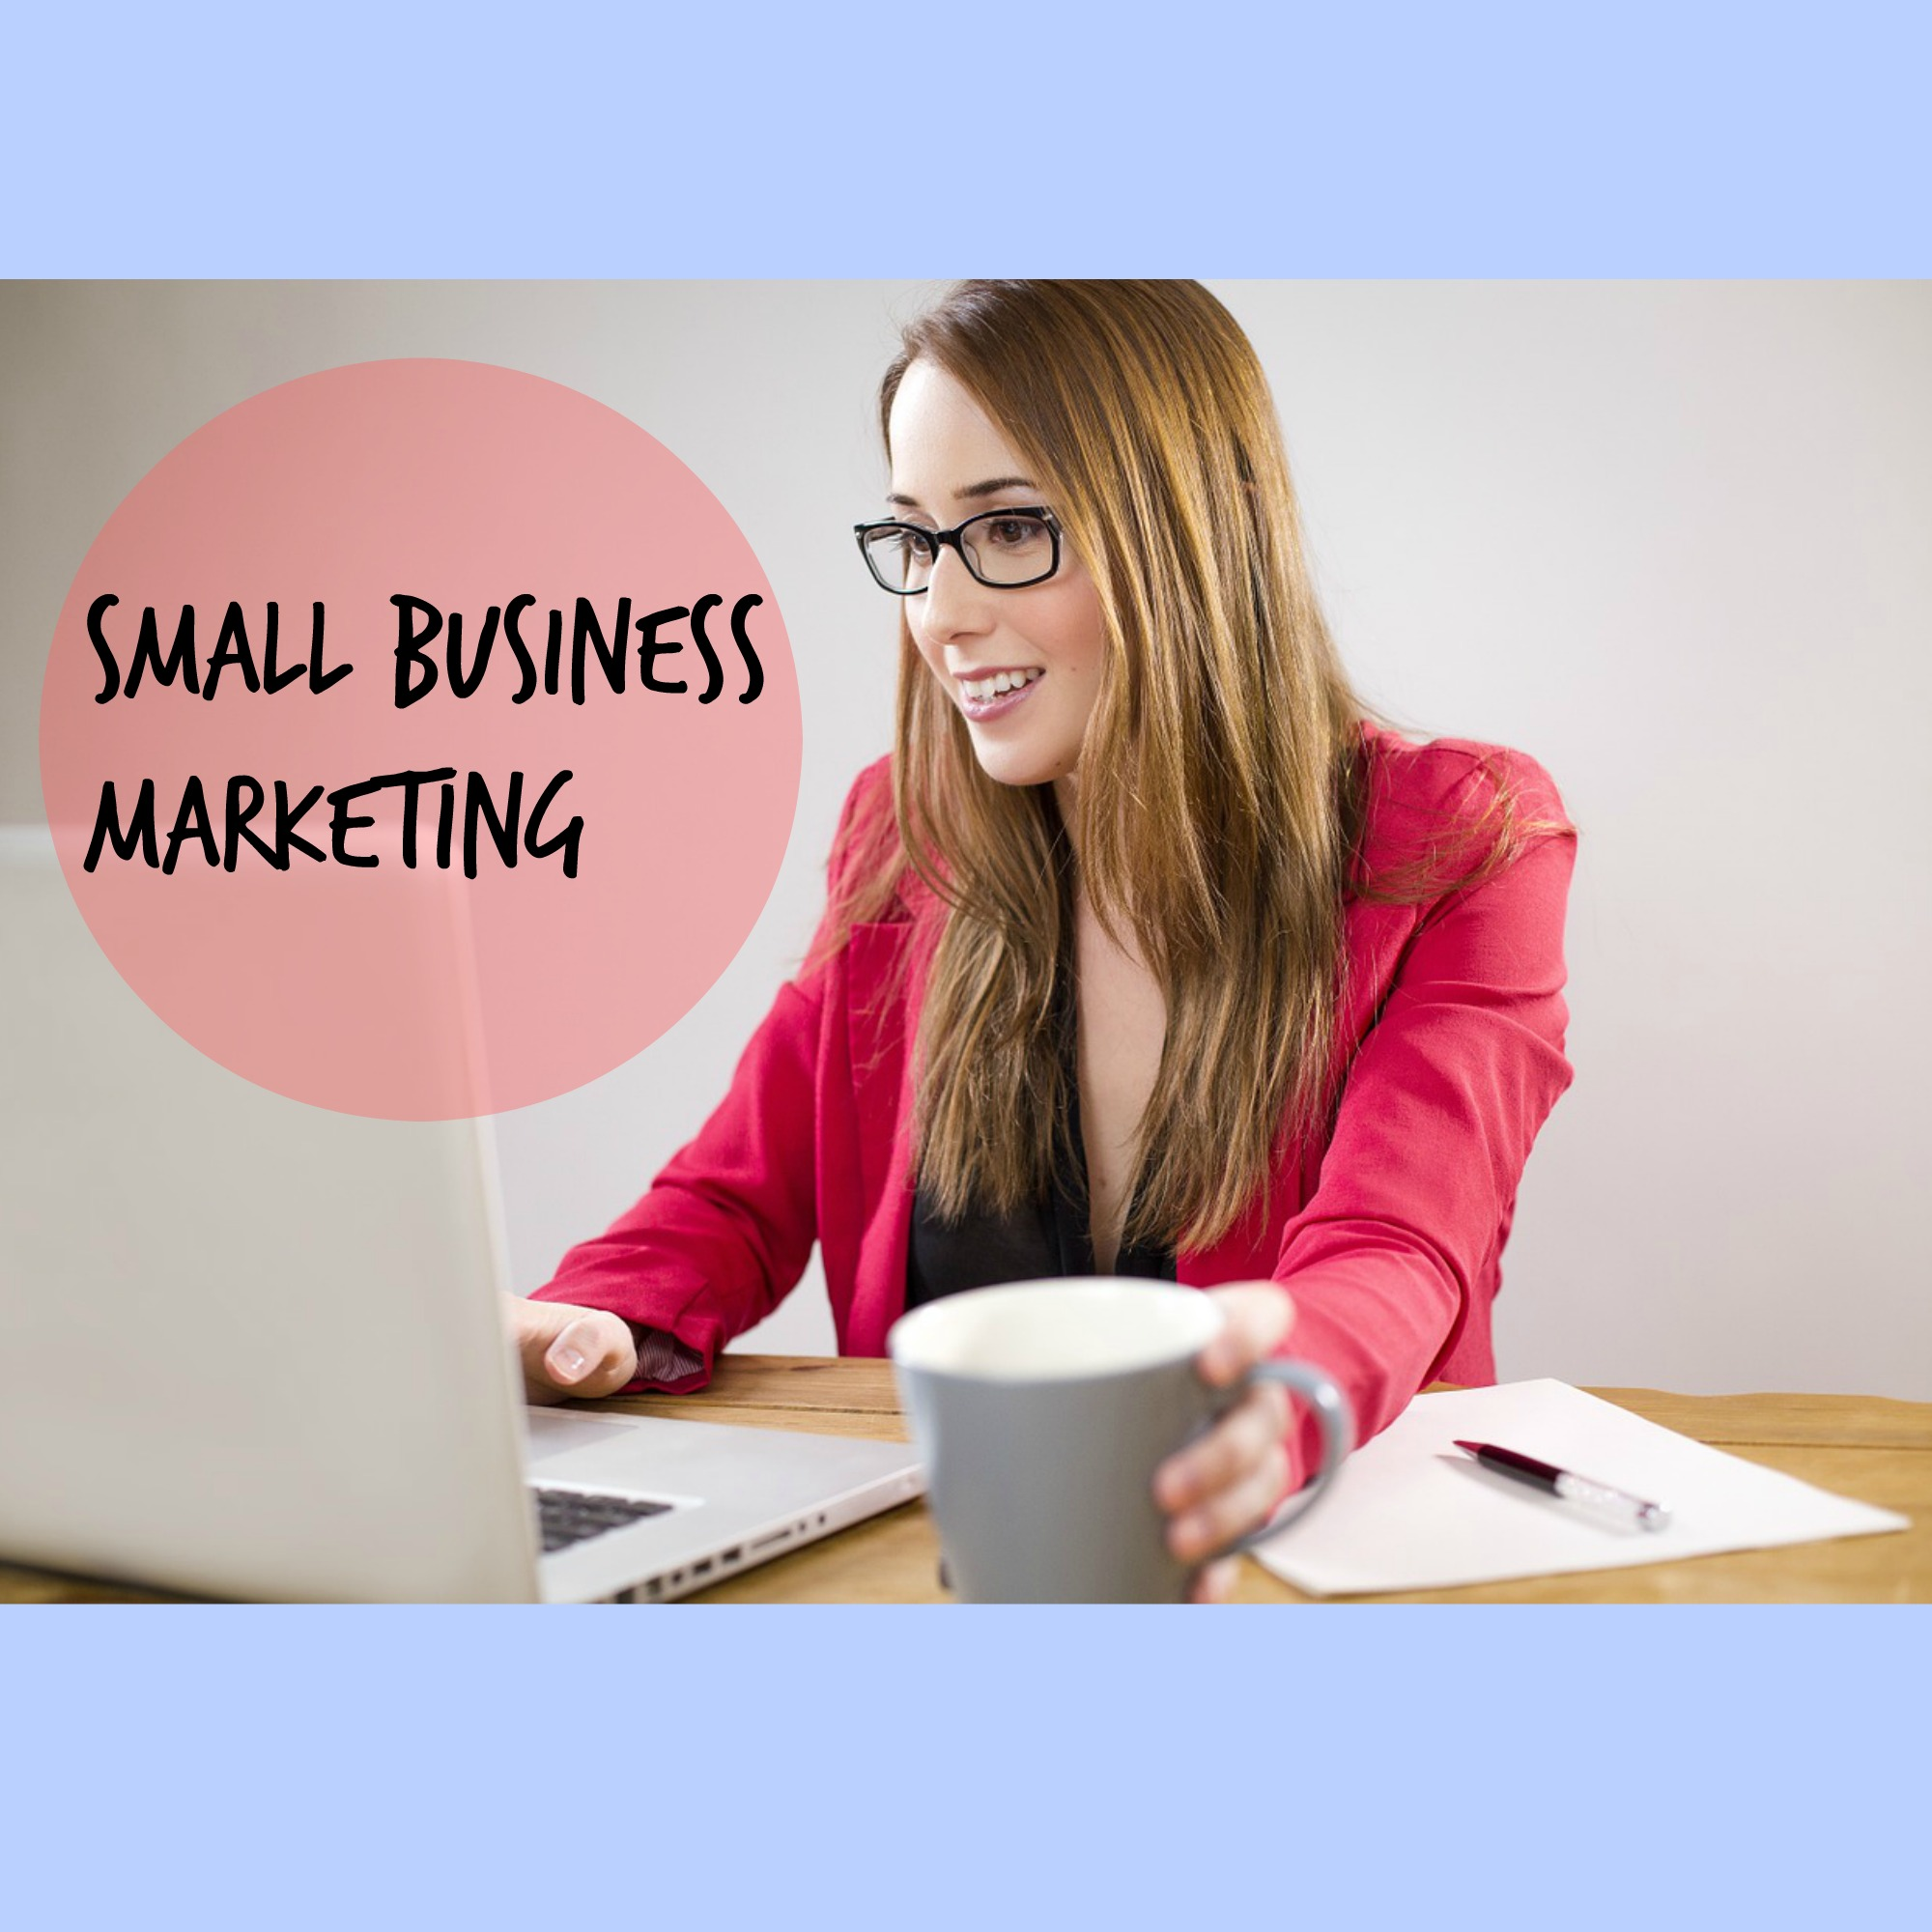 Small Business Marketing Advice to Explode Your Brand Online